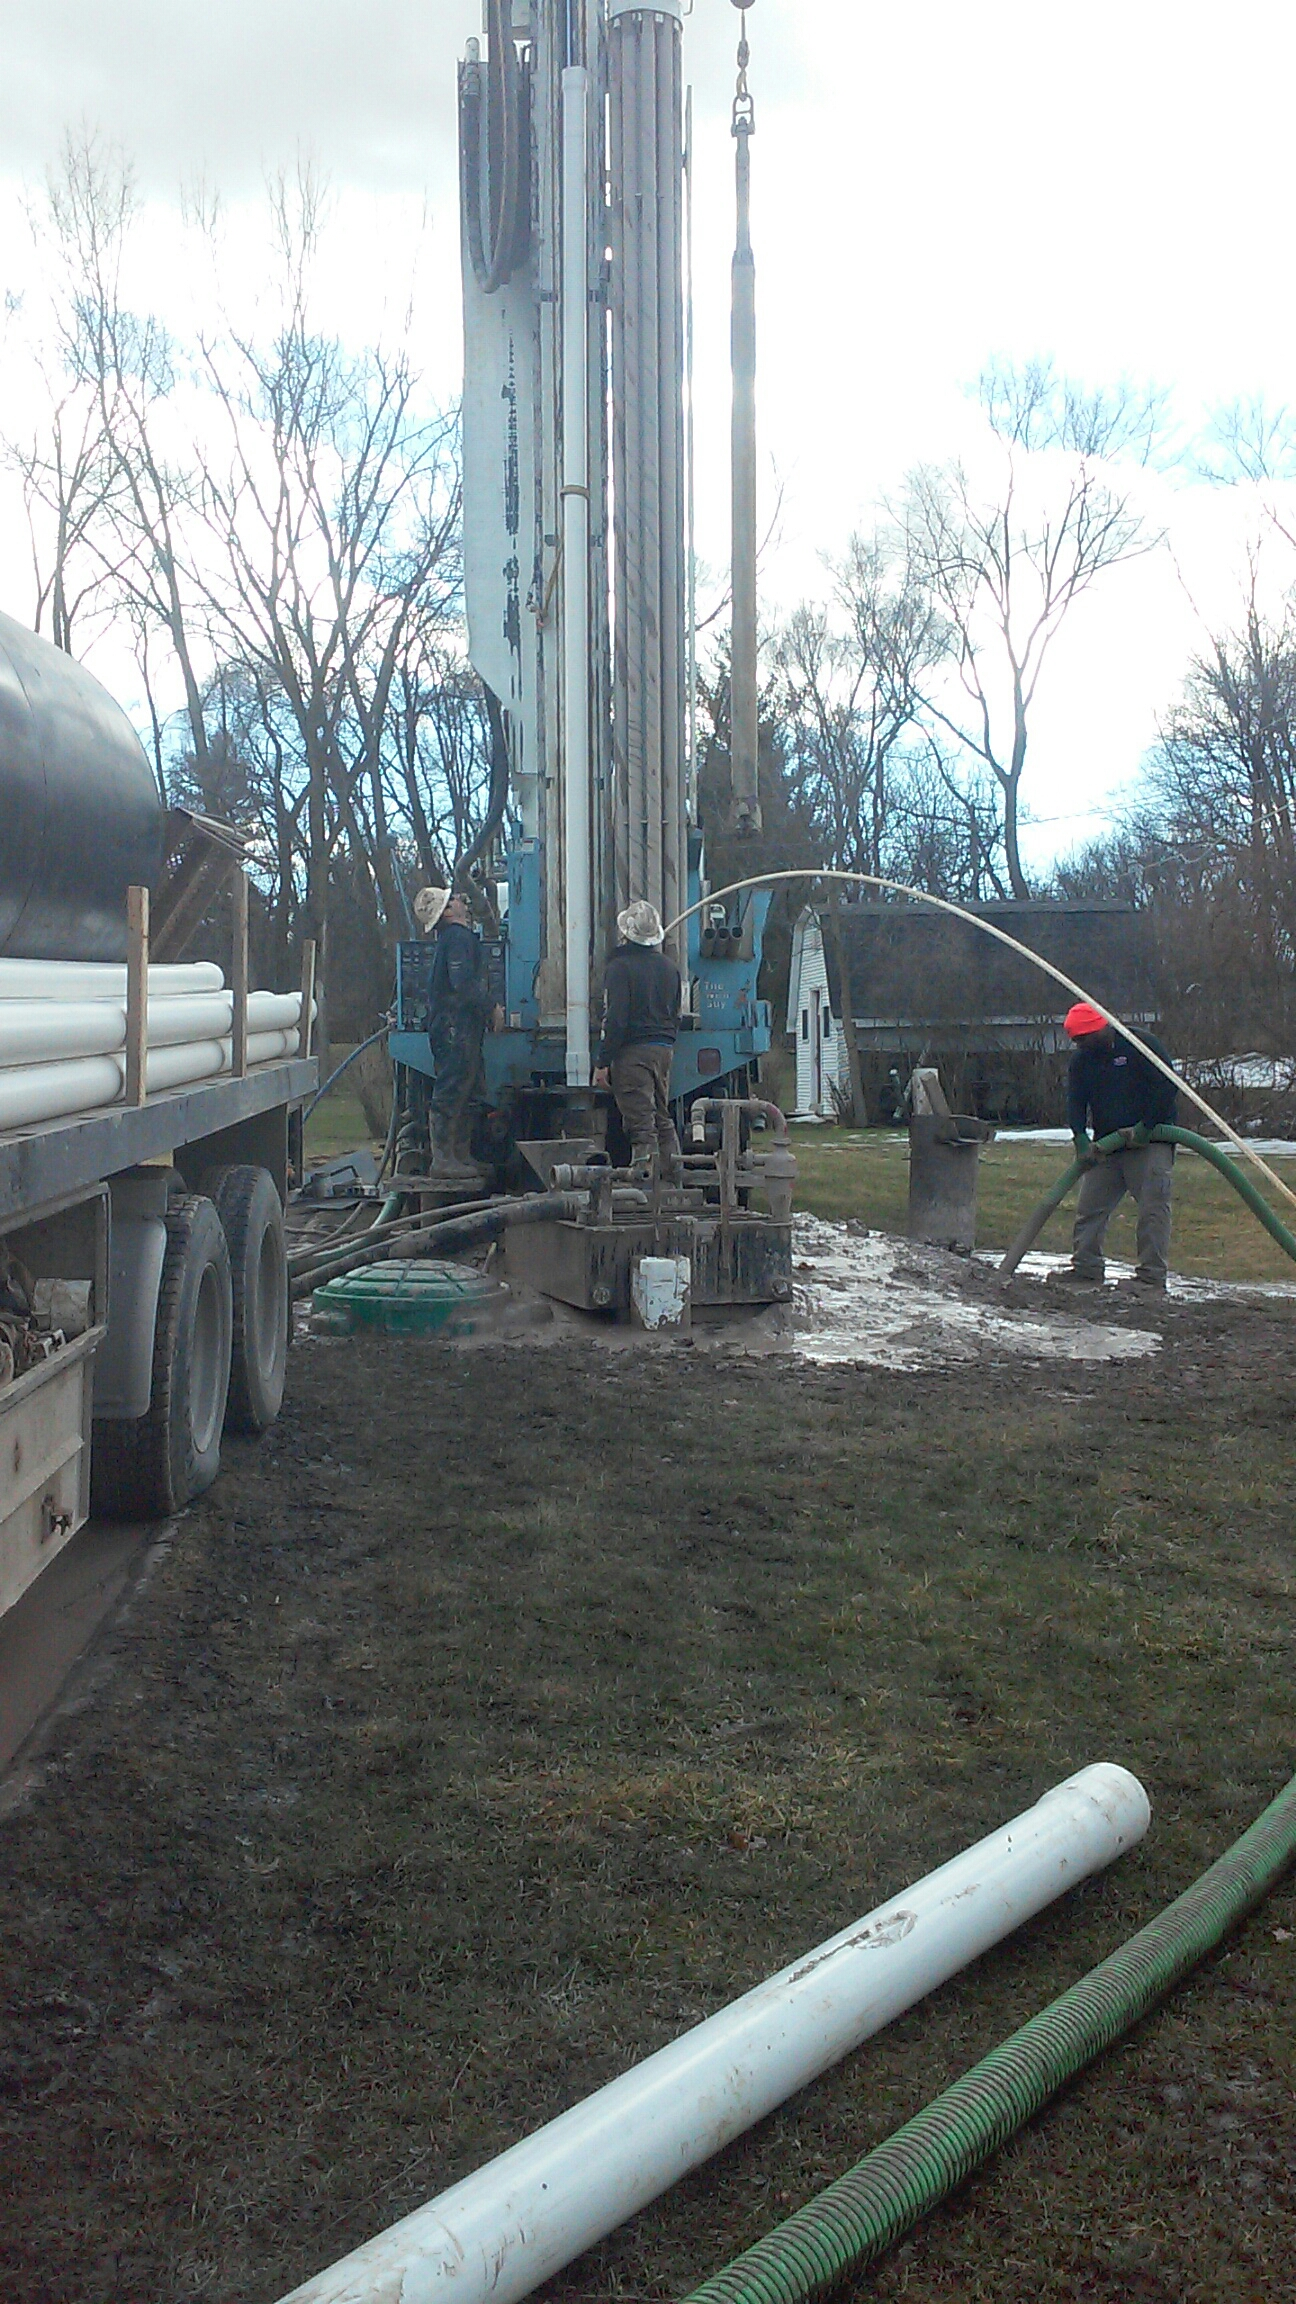 Saint Charles, IL - Pumping water waste from well drilling